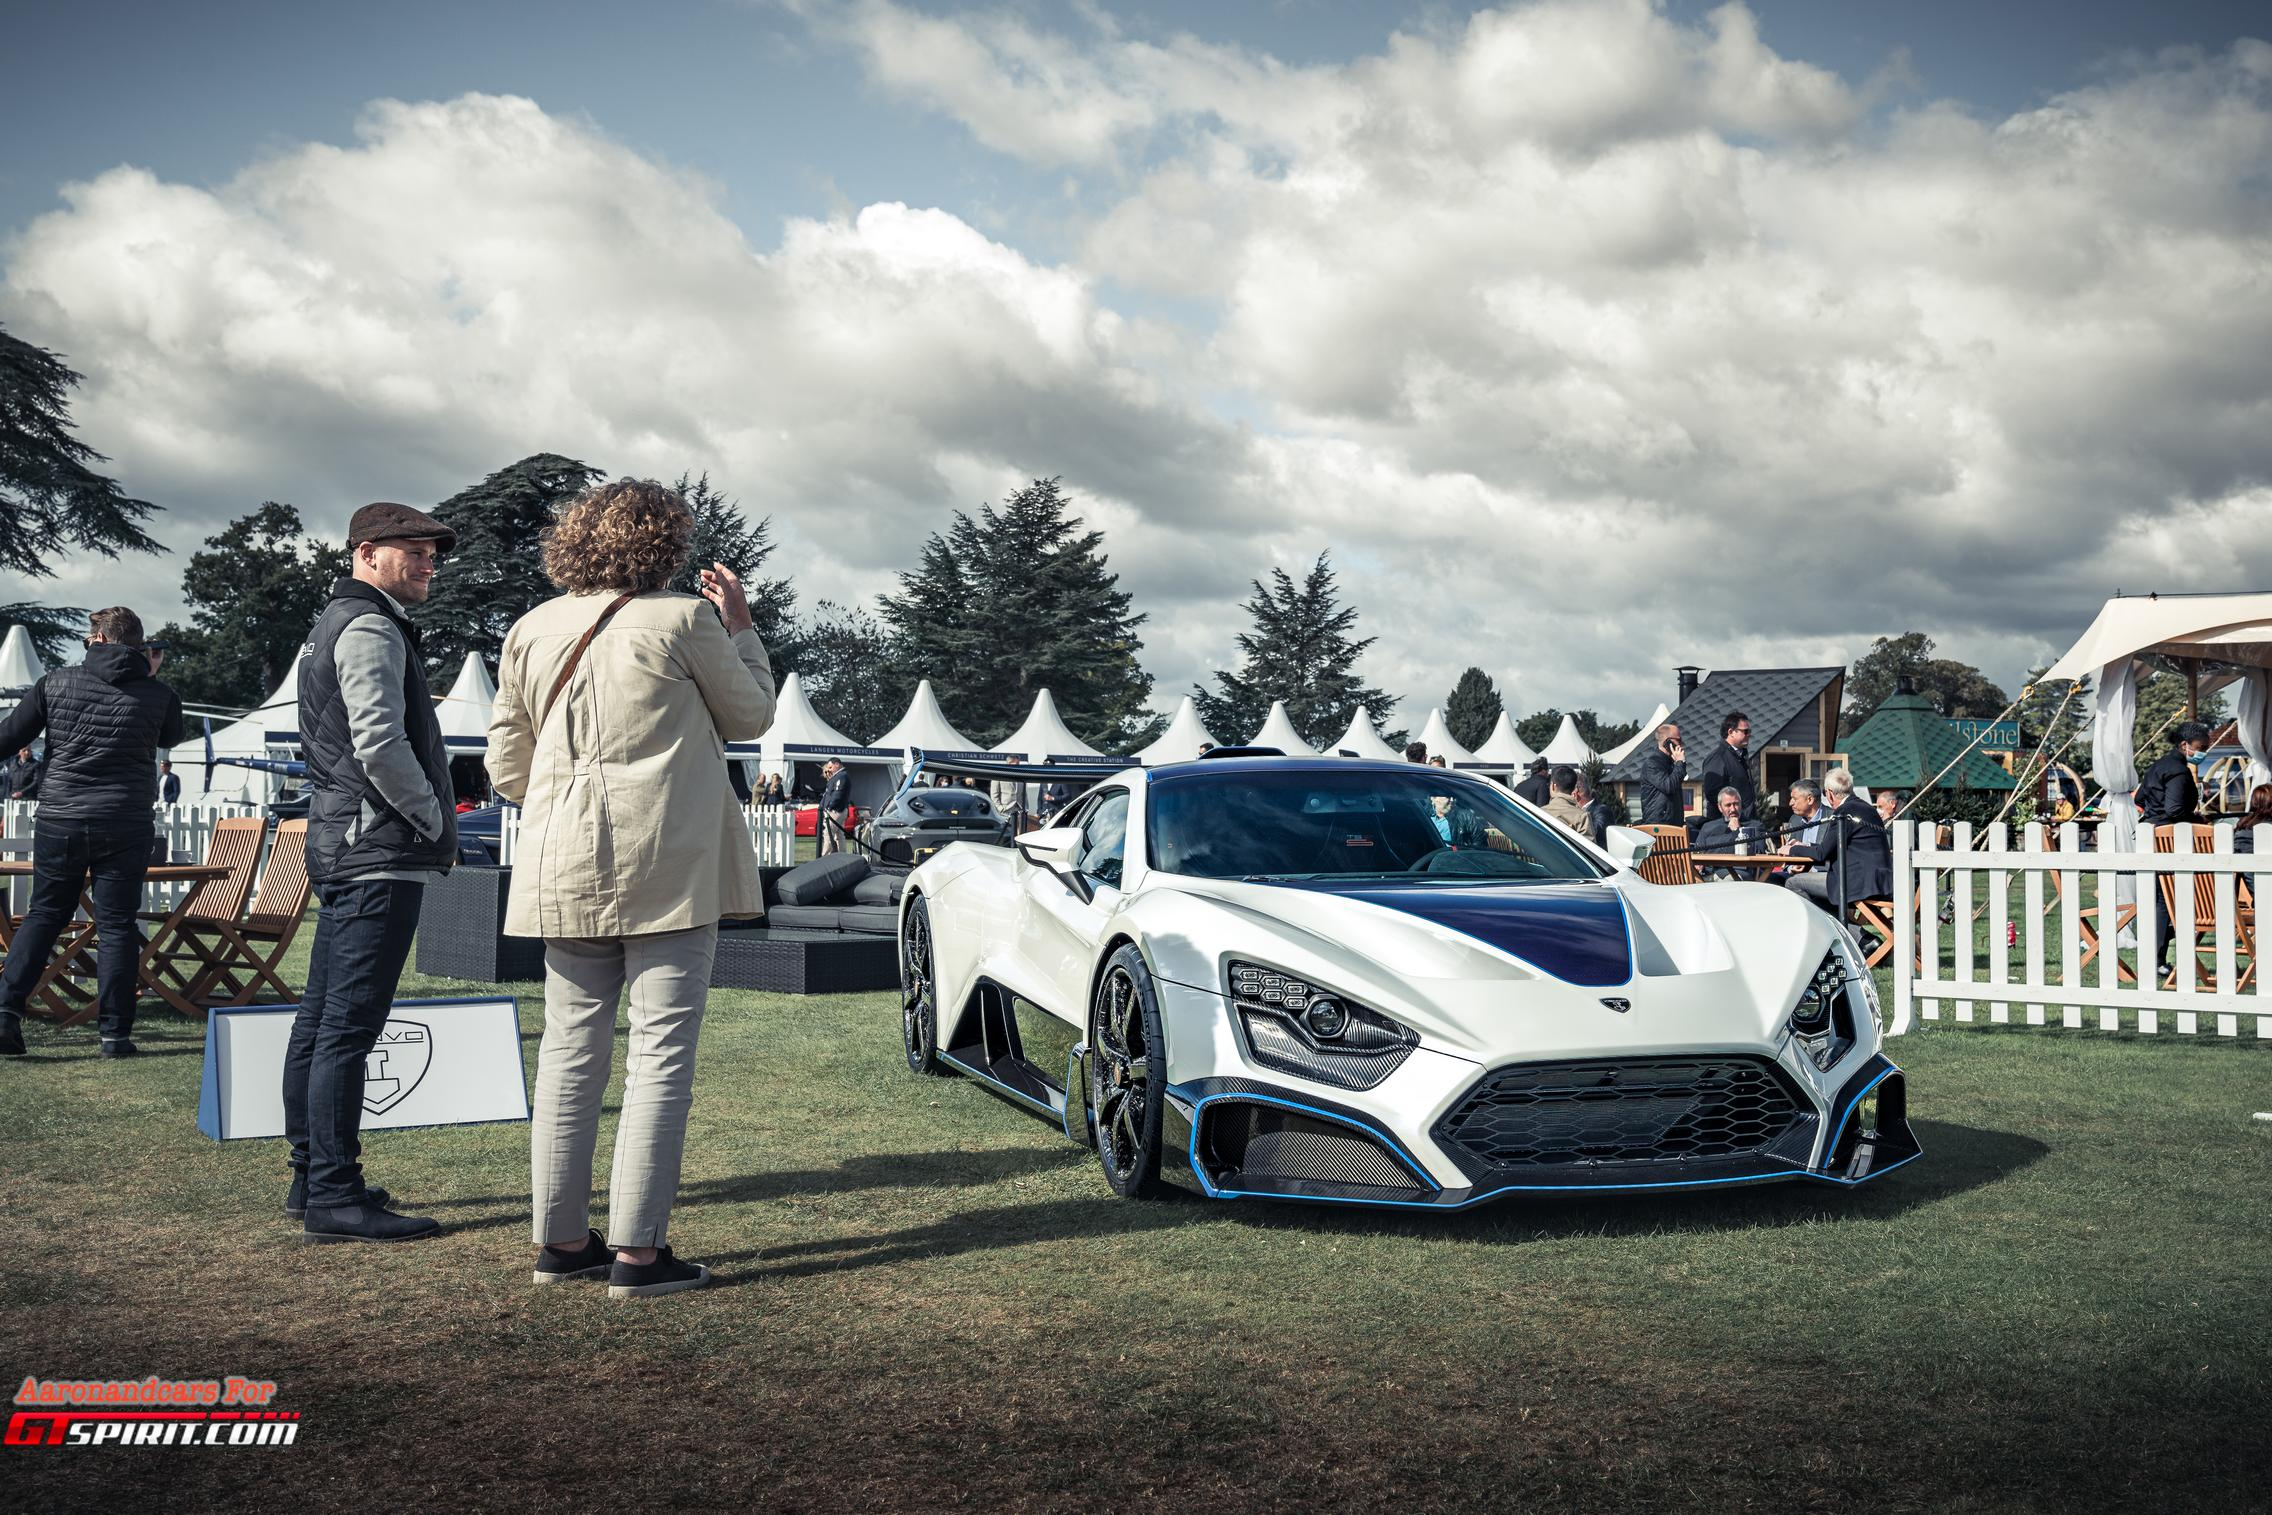 Salon Prive 2020 Zenvo